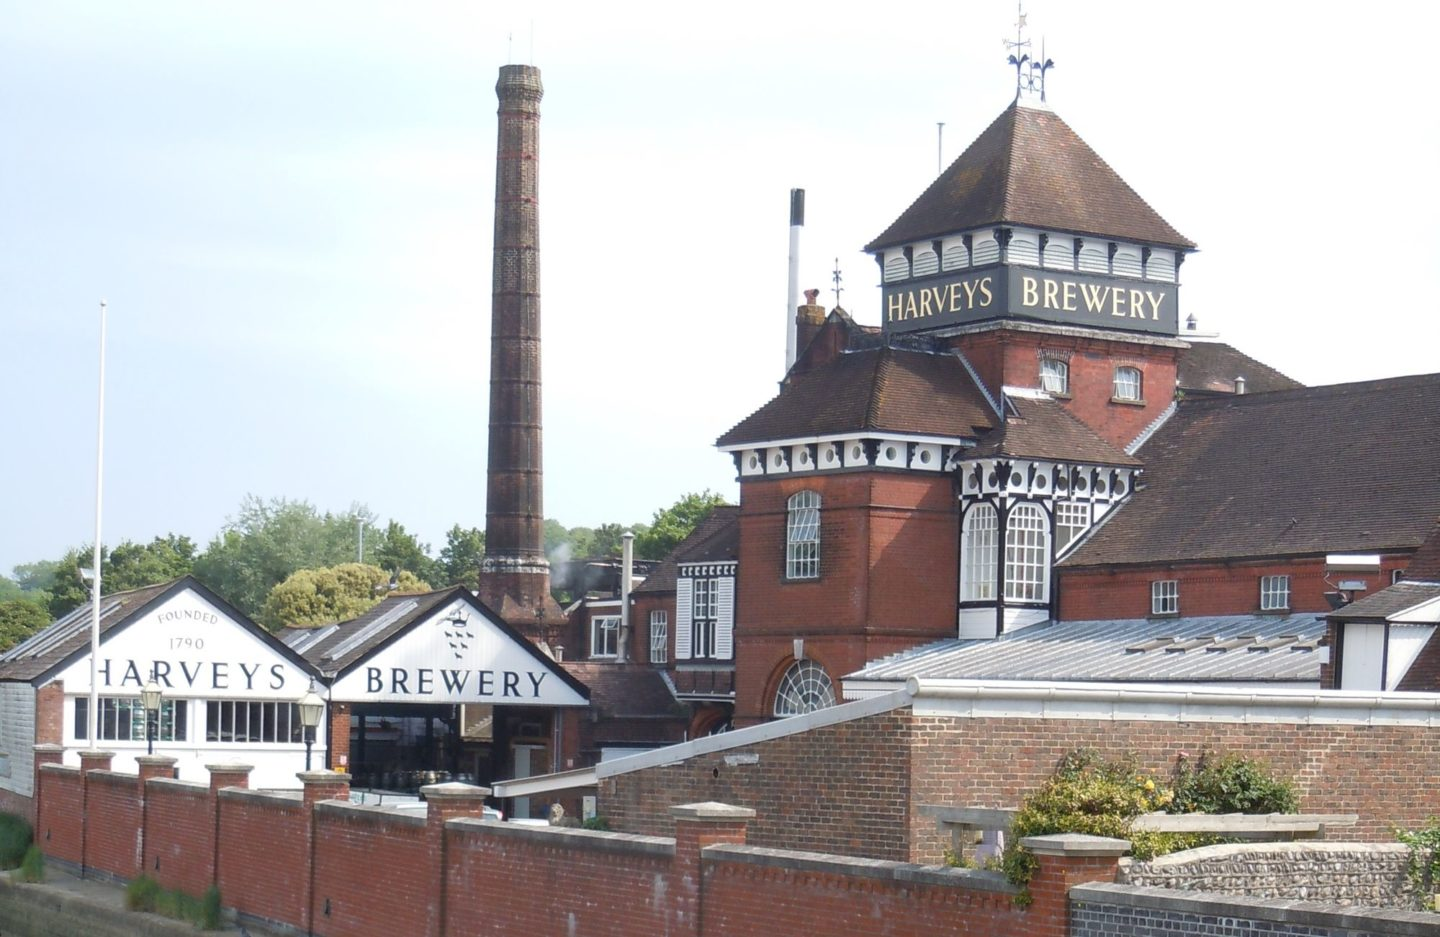 Tour of Harvey's Brewery in Lewes